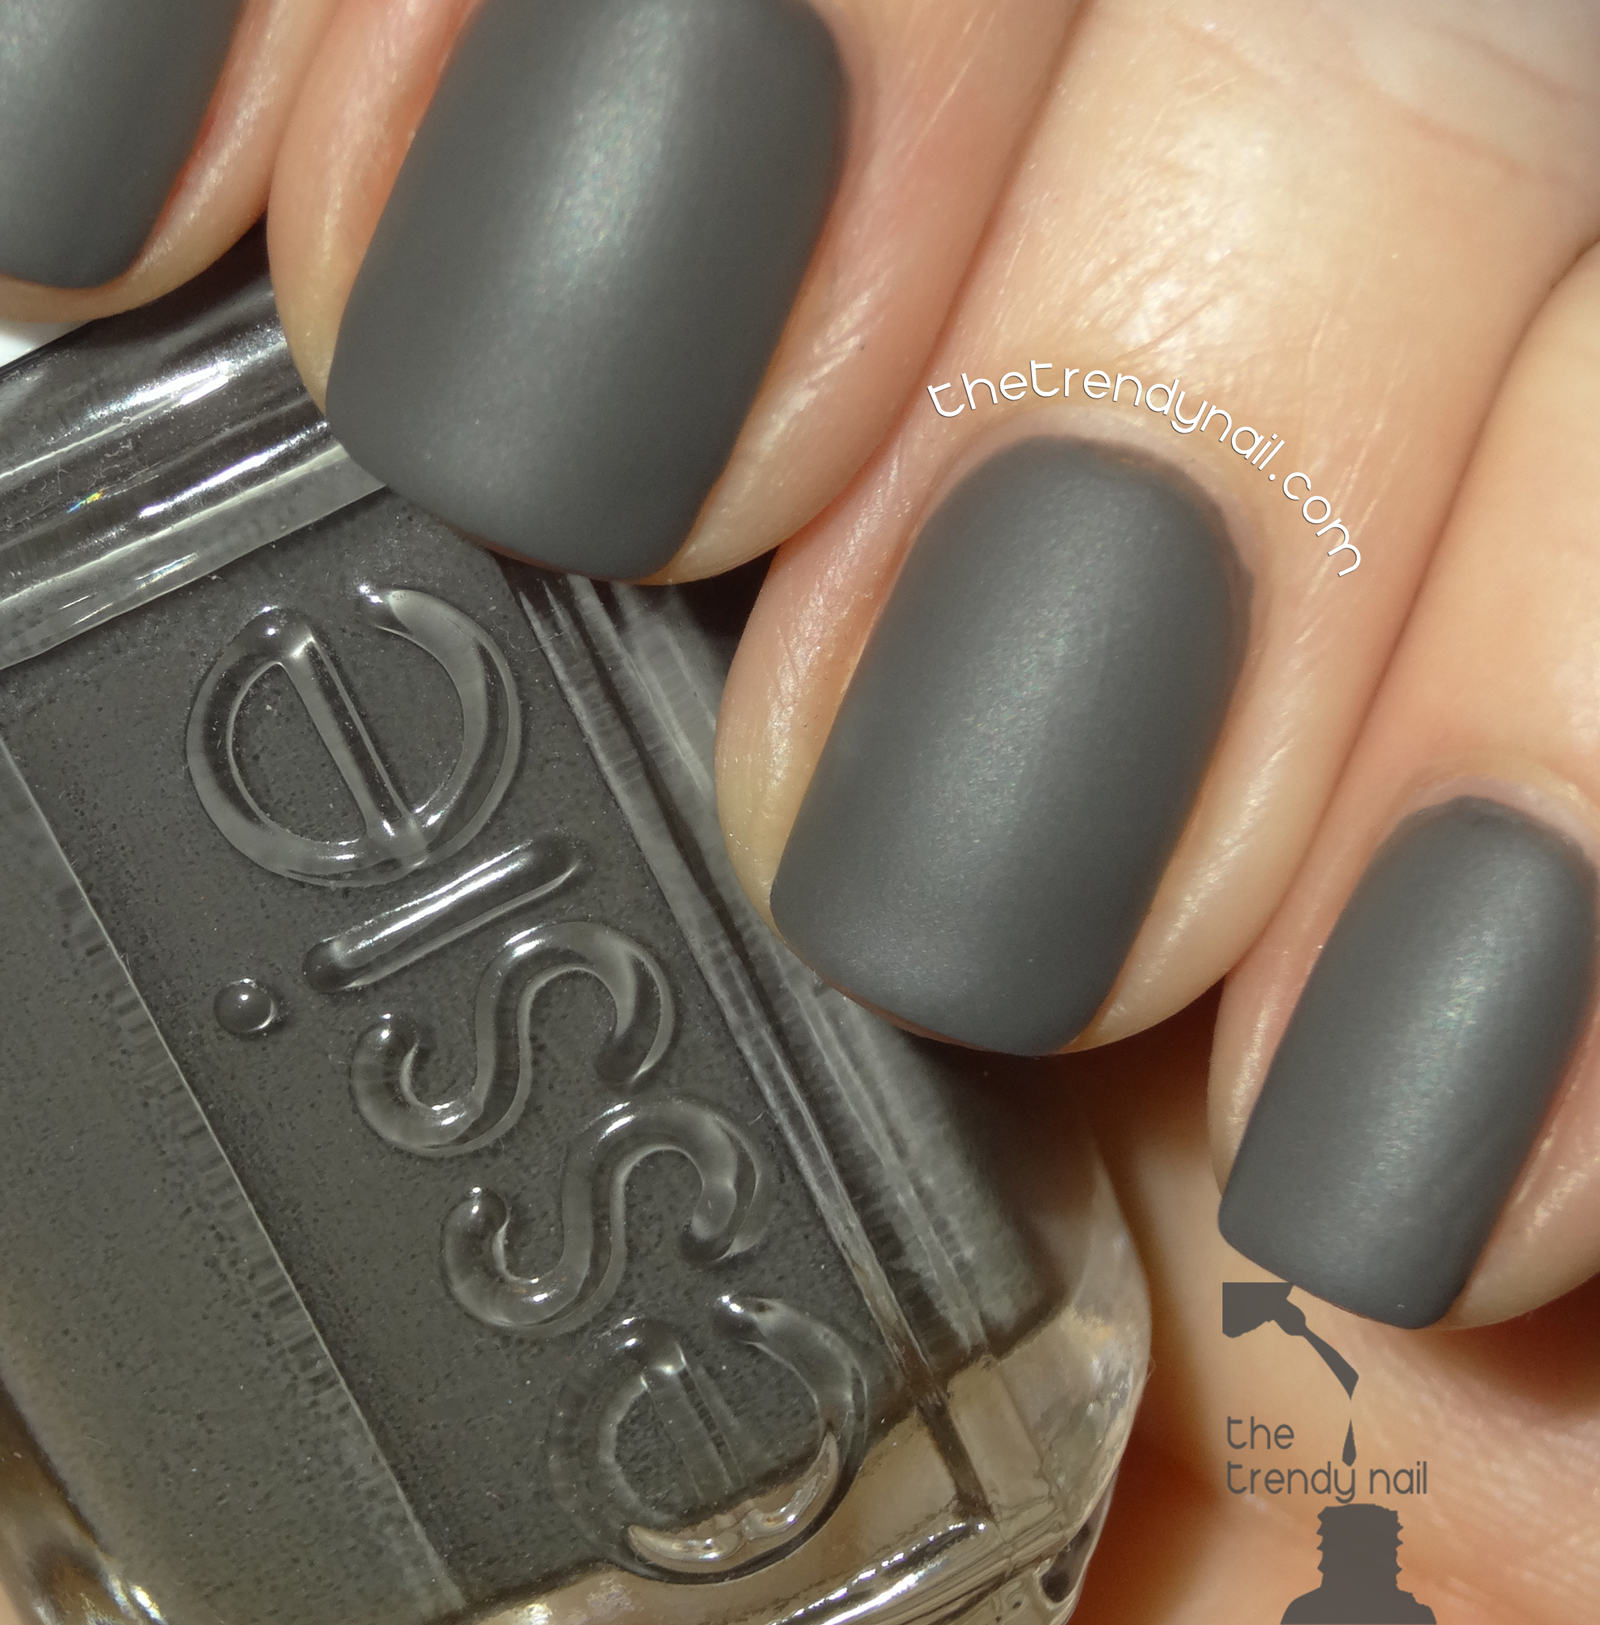 NAIL POLISH REVEALED: Essie Grays & Mattes - The Trendy Nail